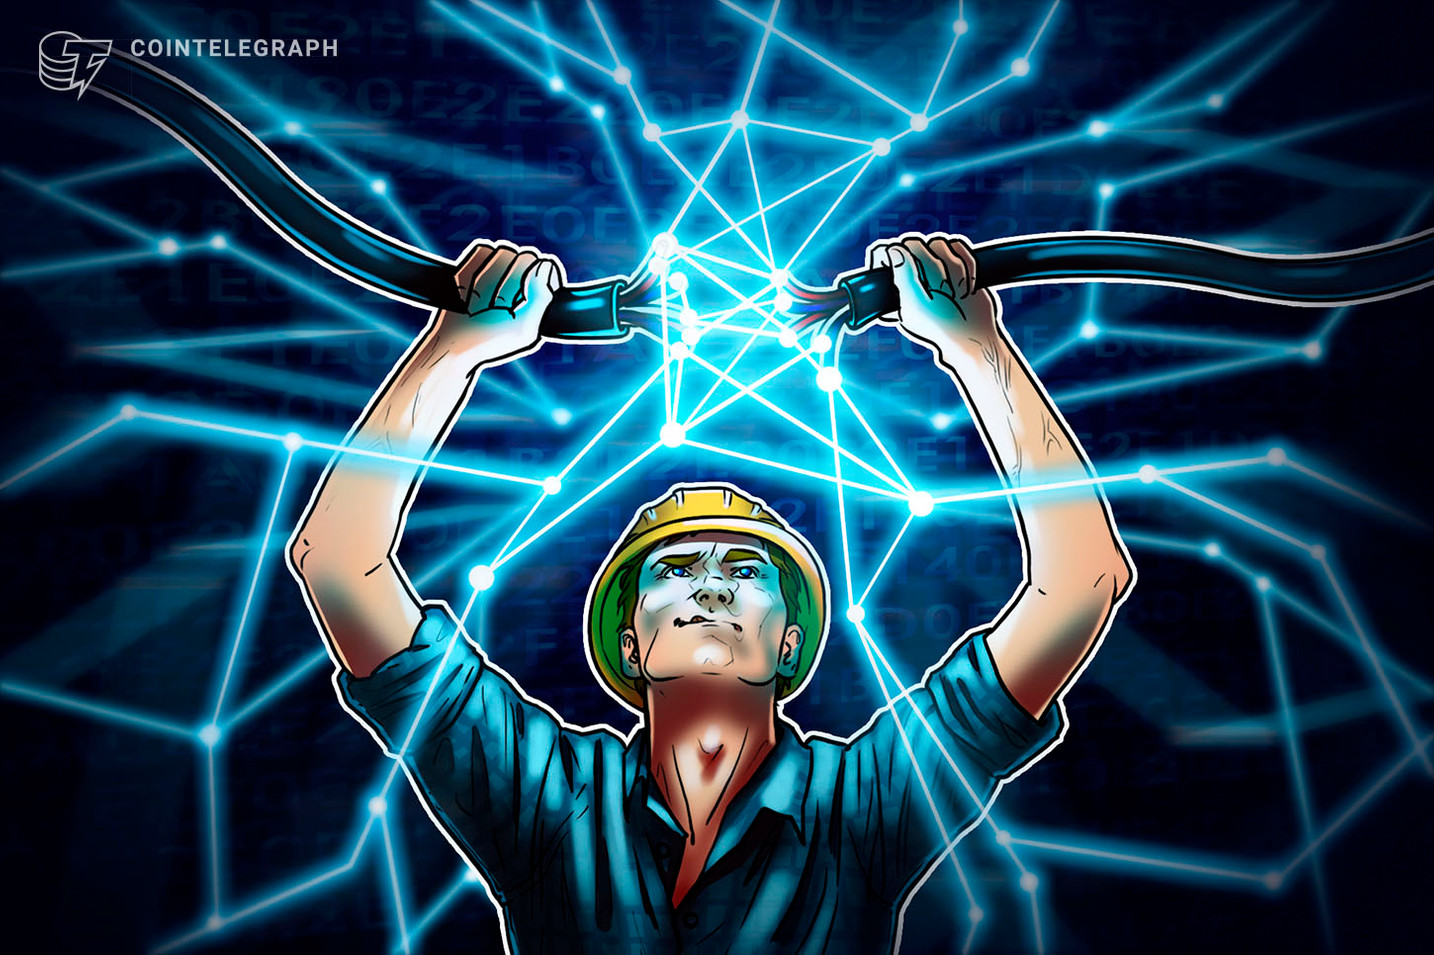 'We're getting paid to produce Bitcoins' reveals Texas BTC miner